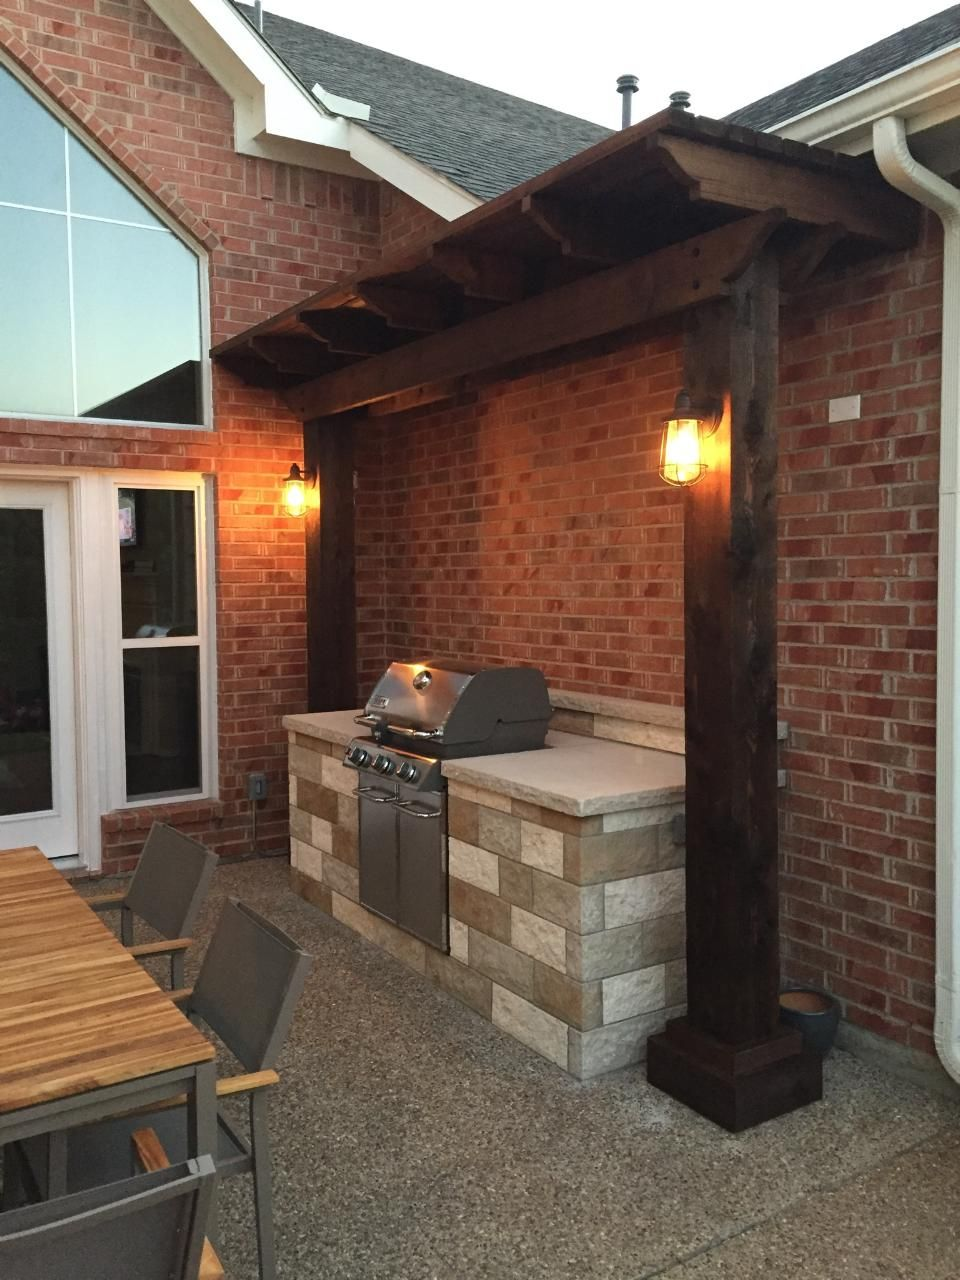 Small Stone Grill Enclosure With Cedar Arbor Outdoor Kitchen Grill Outdoor Bbq Area Outdoor Barbeque